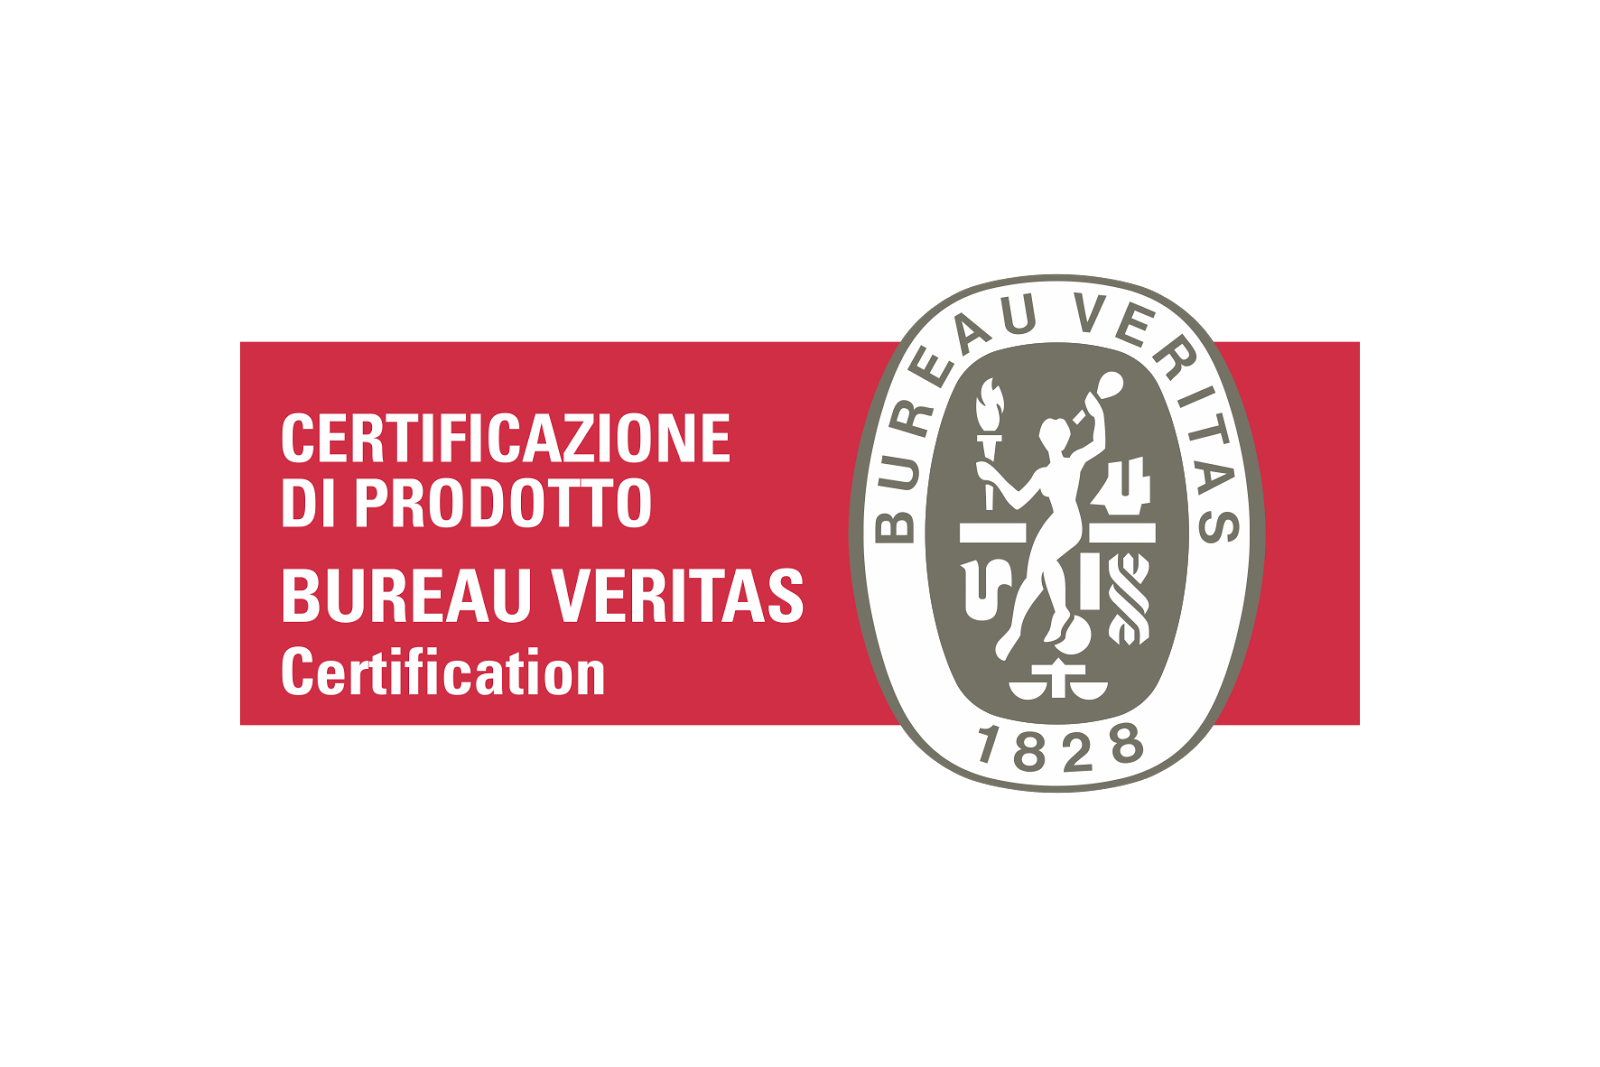 Bureau veritas certification logo for Bureau veritas